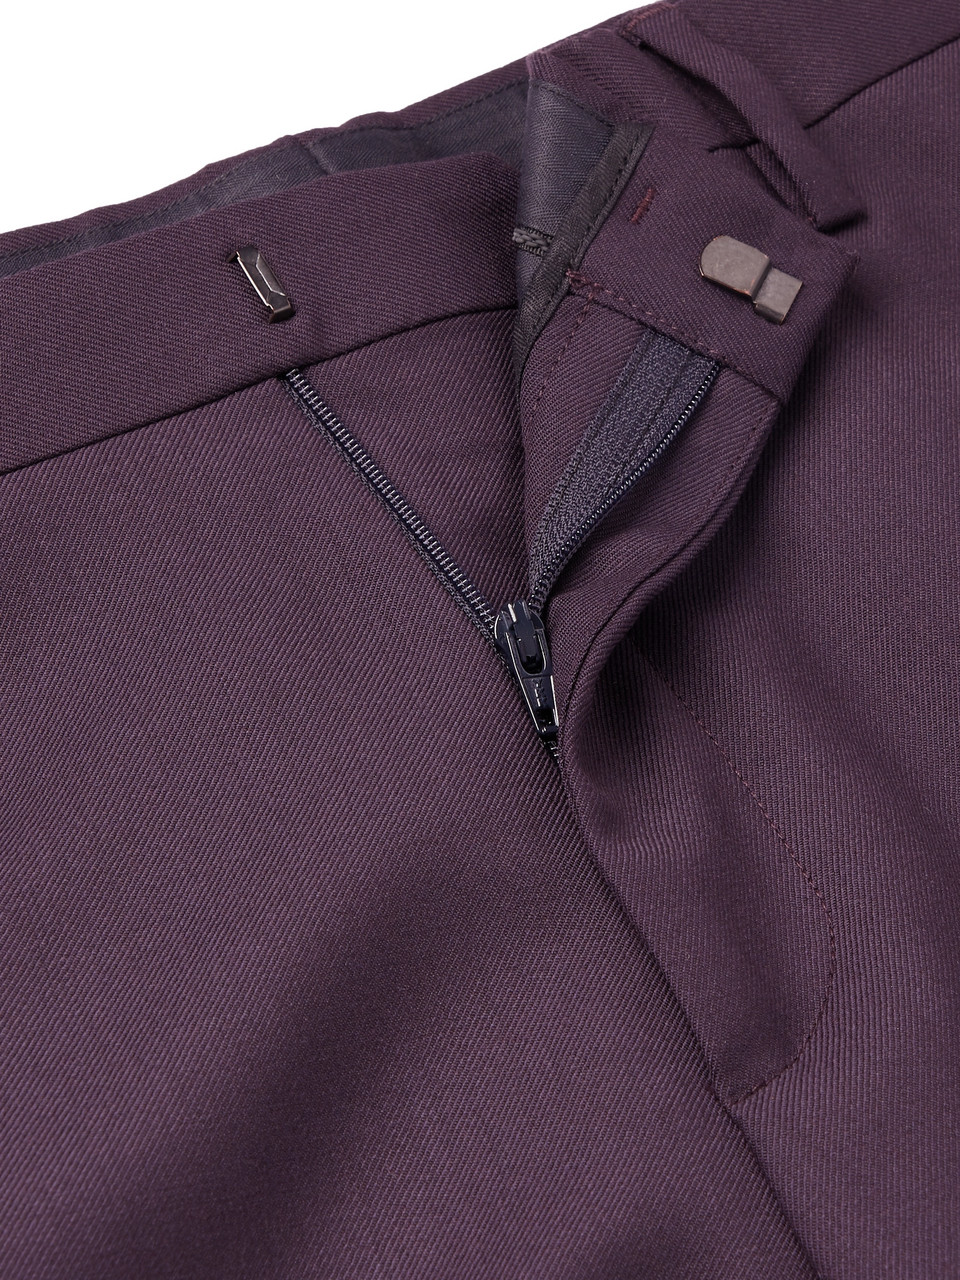 Paul Smith Aubergine Soho Slim-Fit Wool Suit Trousers